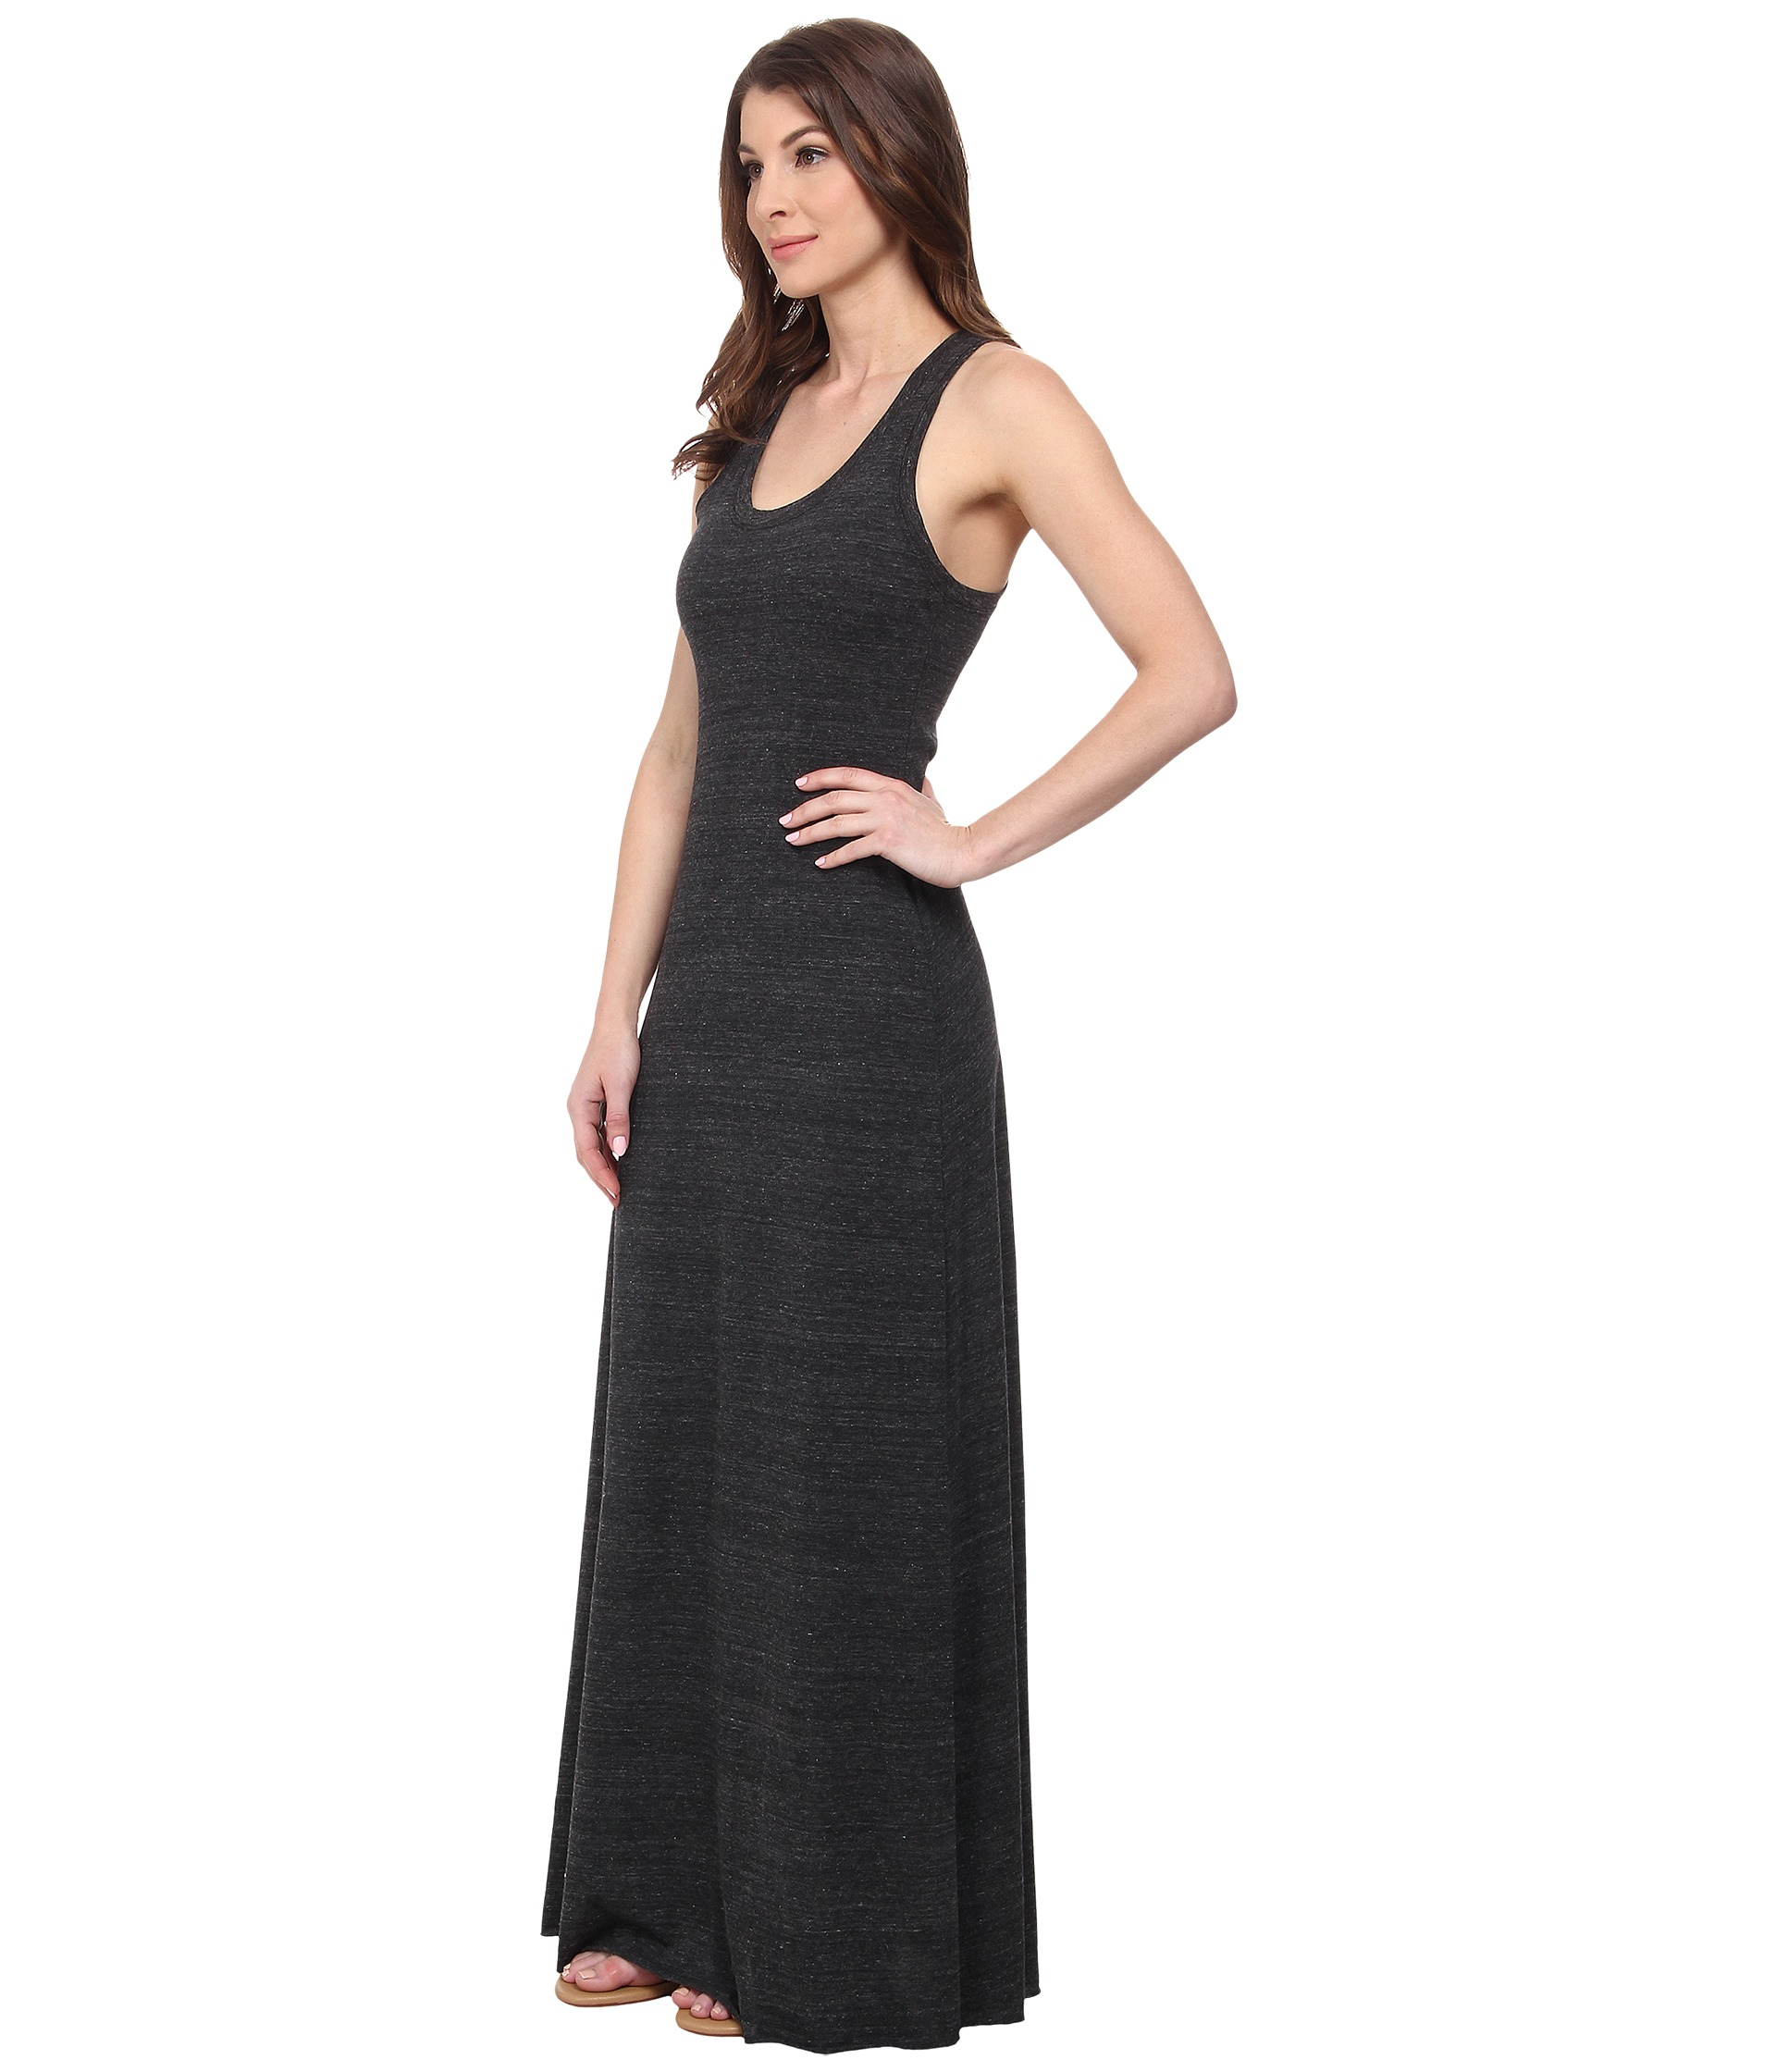 Cotton racerback maxi dress